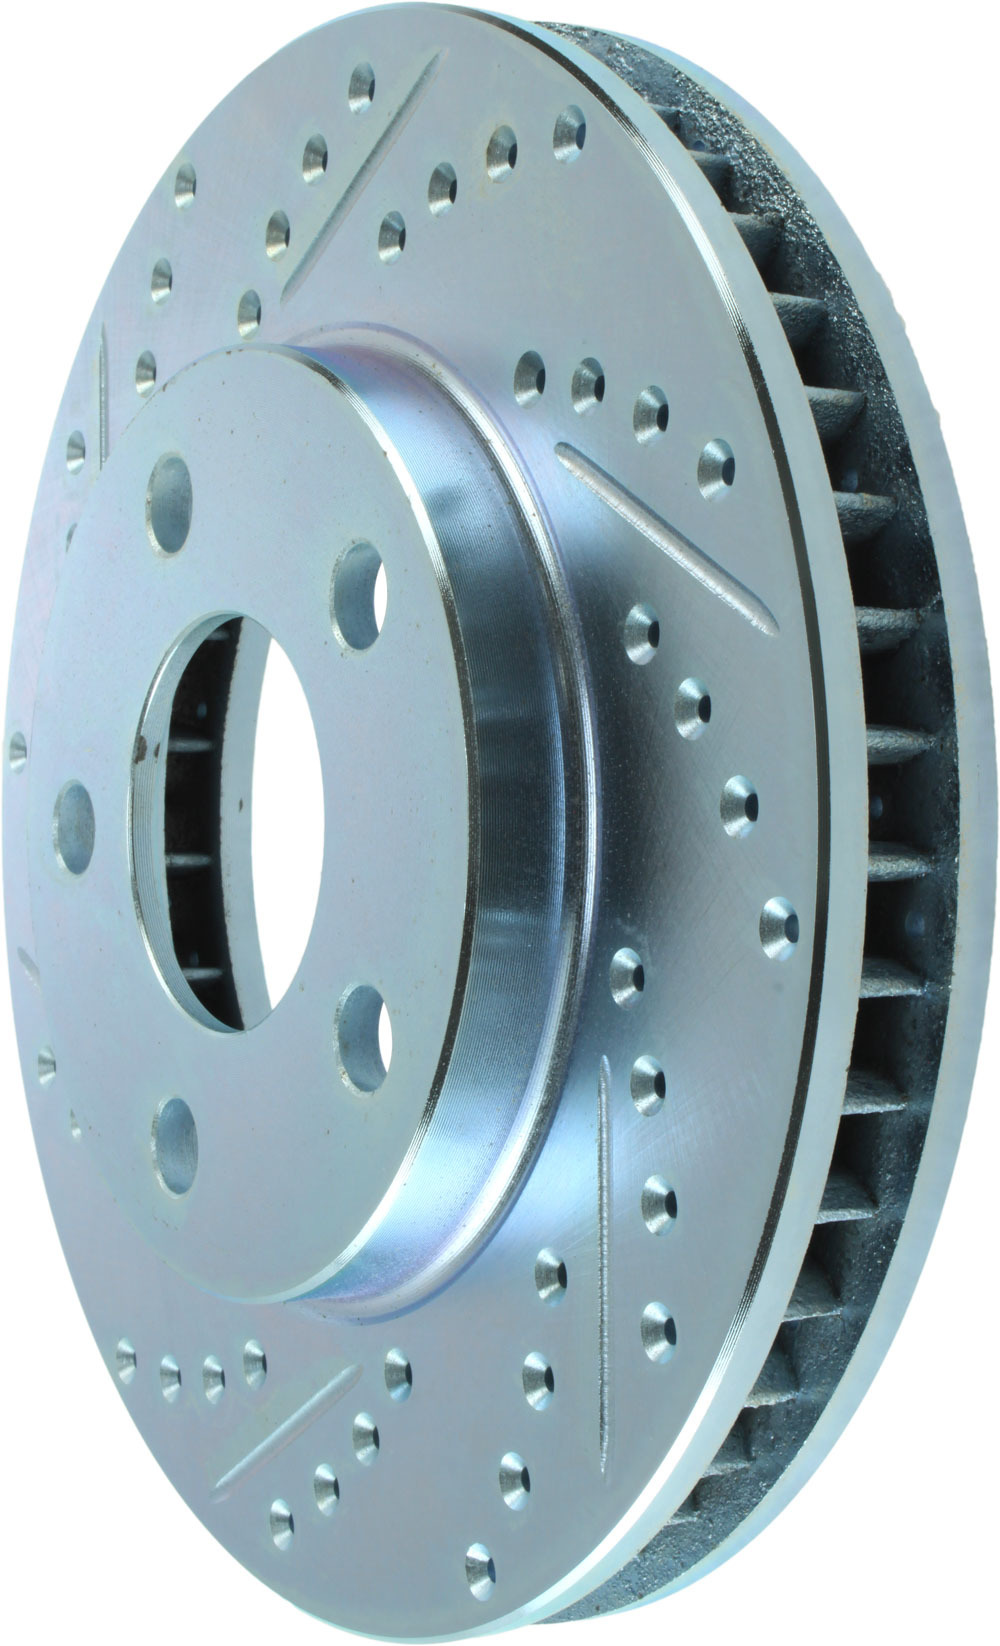 Stoptech 227.62057R Brake Rotor, Sport, Front, Passenger Side, Drilled / Slotted, 278 mm OD, 32.3 mm Thick, 5 x 118 mm Bolt Pattern, Iron, Natural, Each